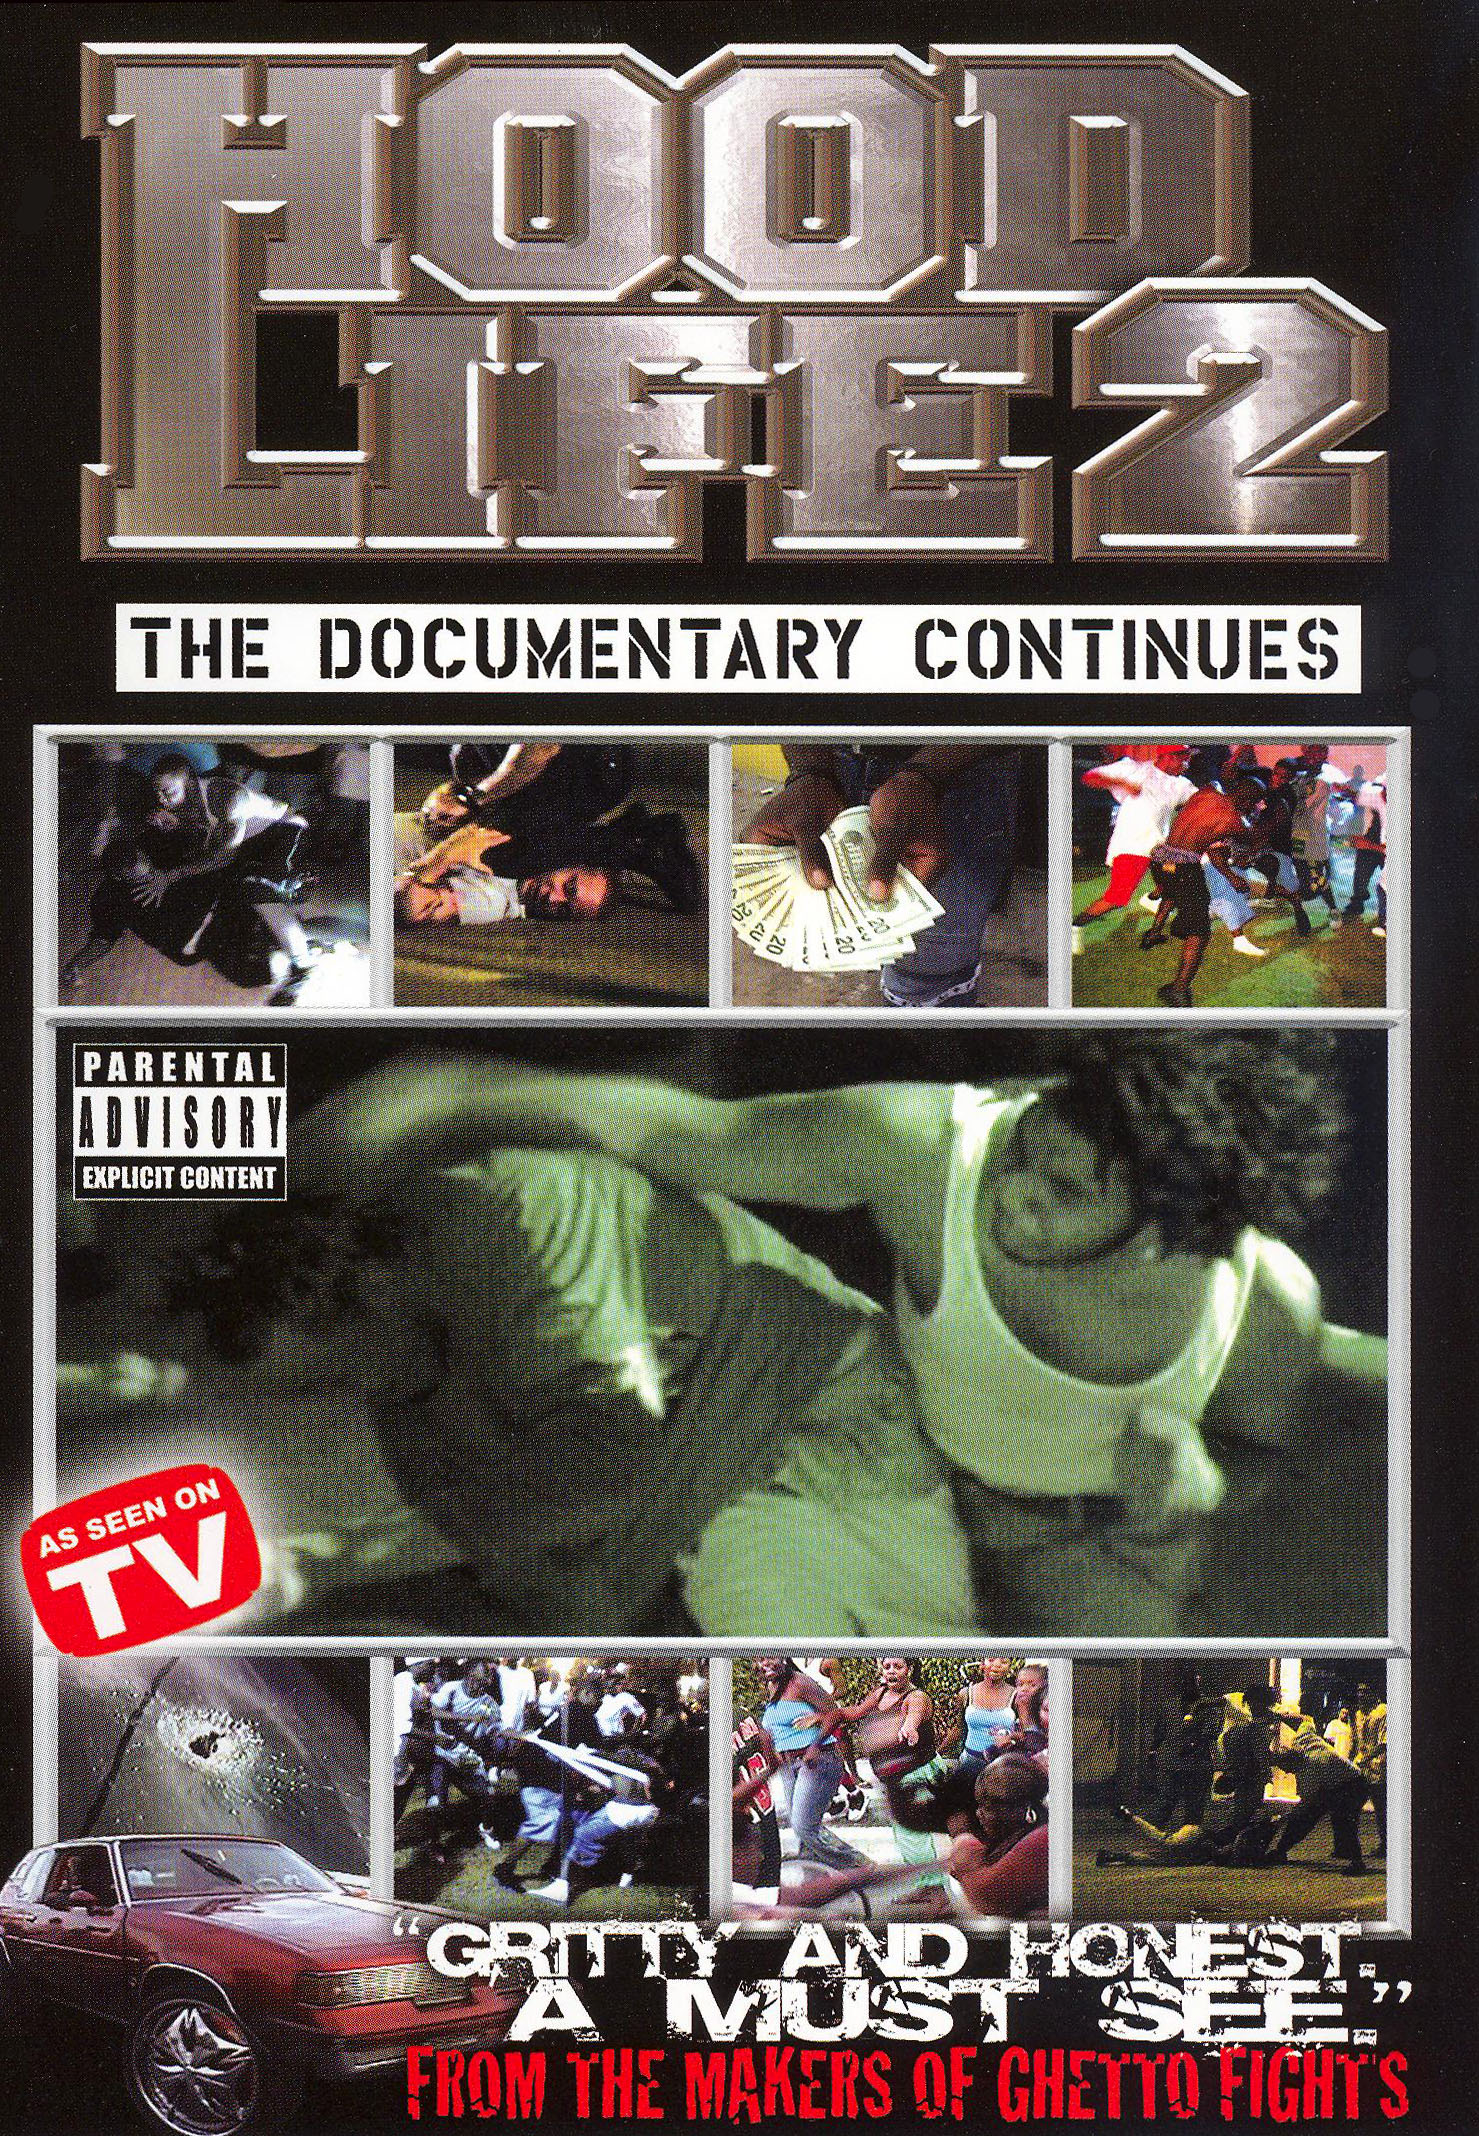 Hood Life 2: The Documentary Continues